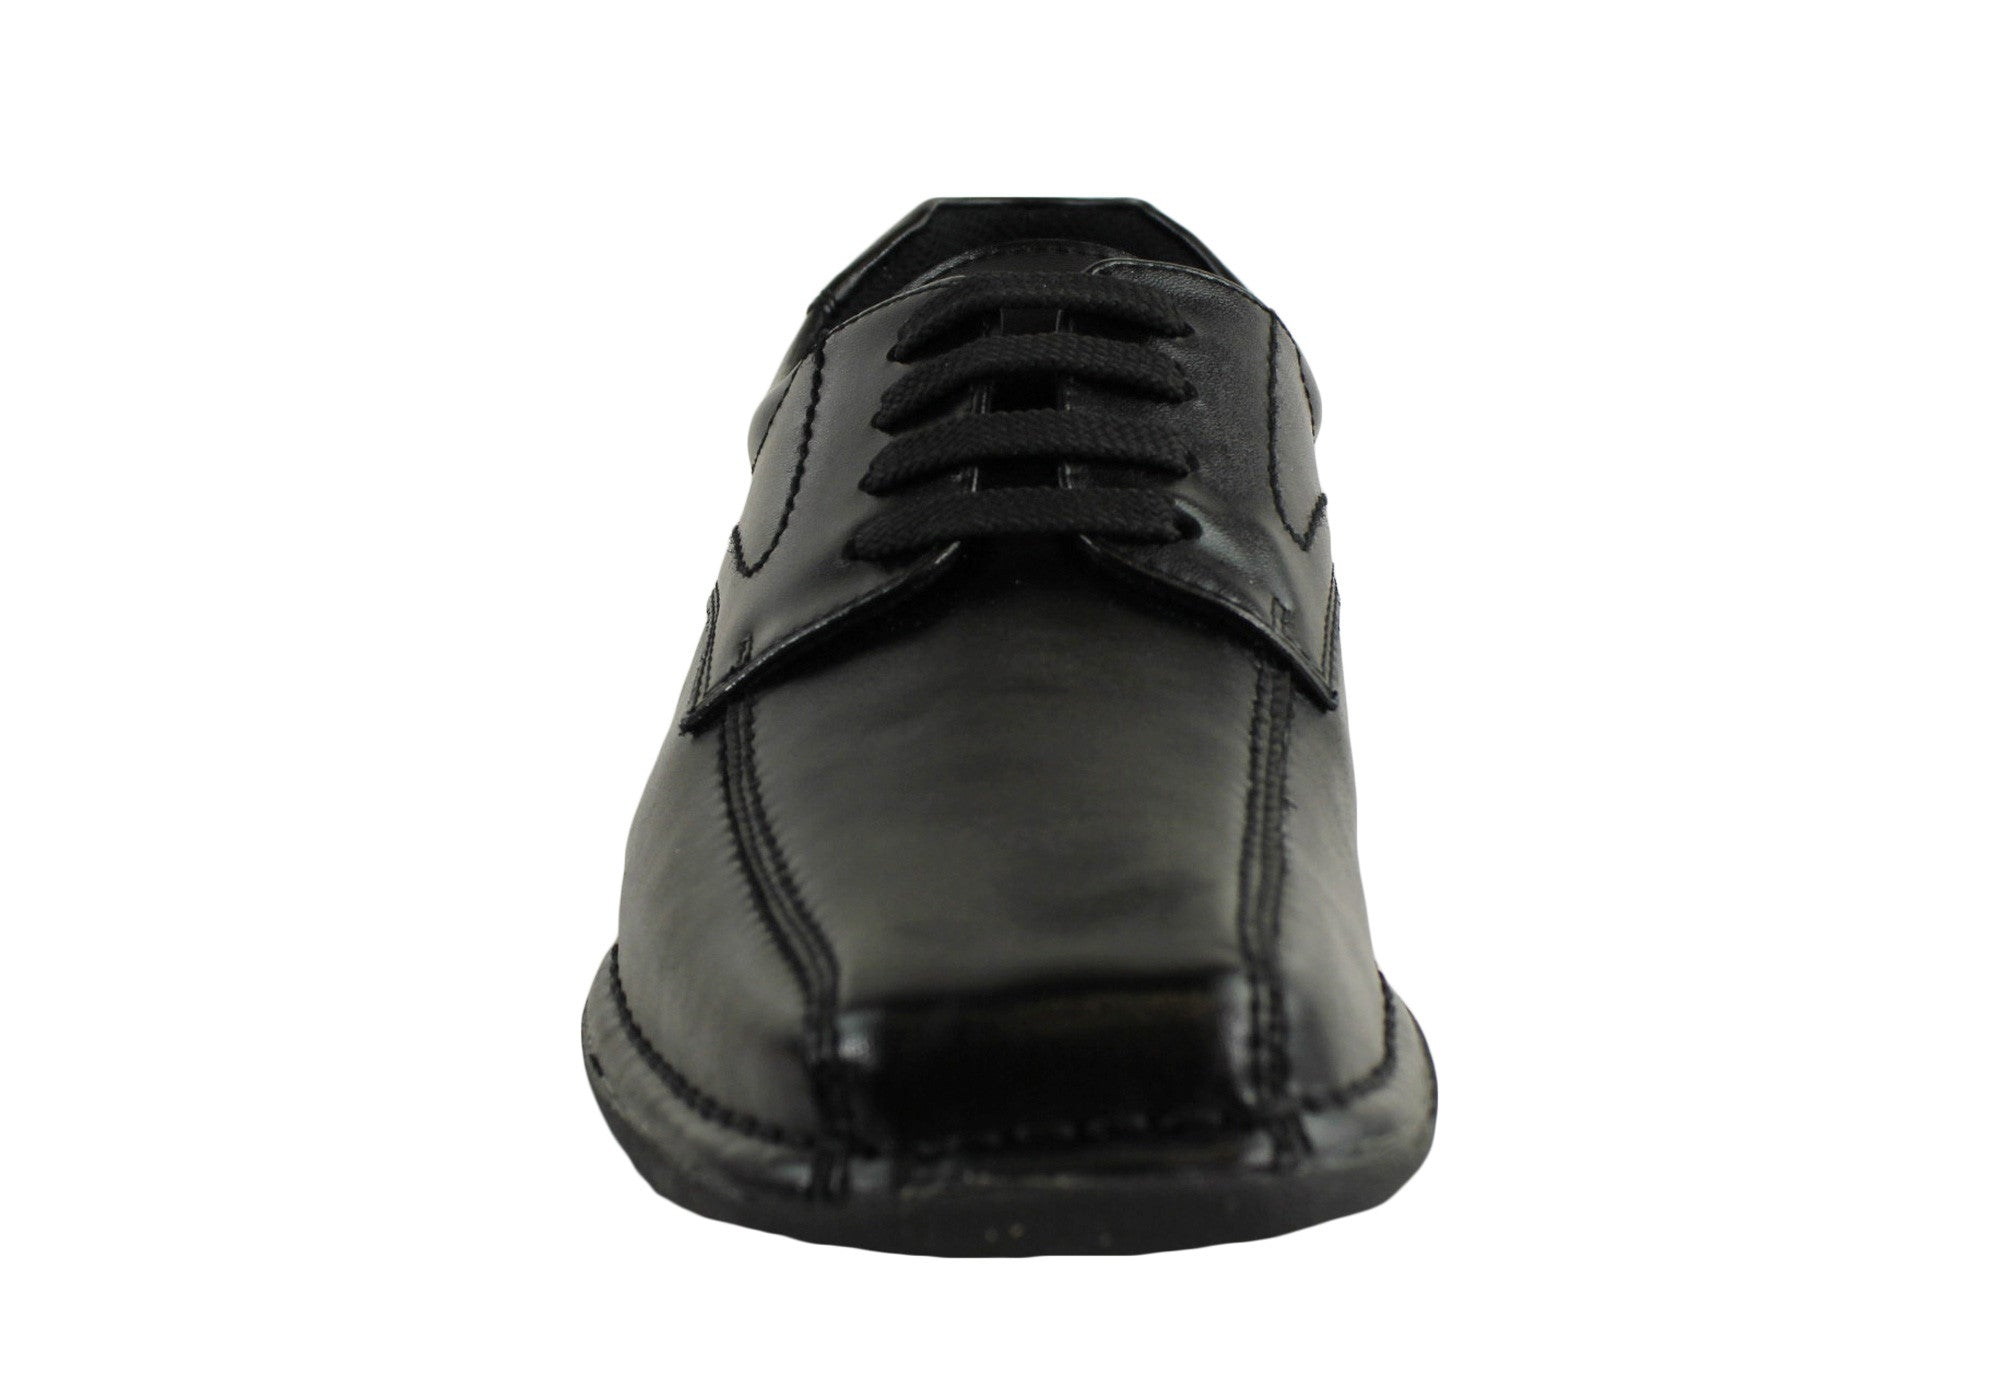 VIP Ben Mens Leather Dress Lace Up Shoes